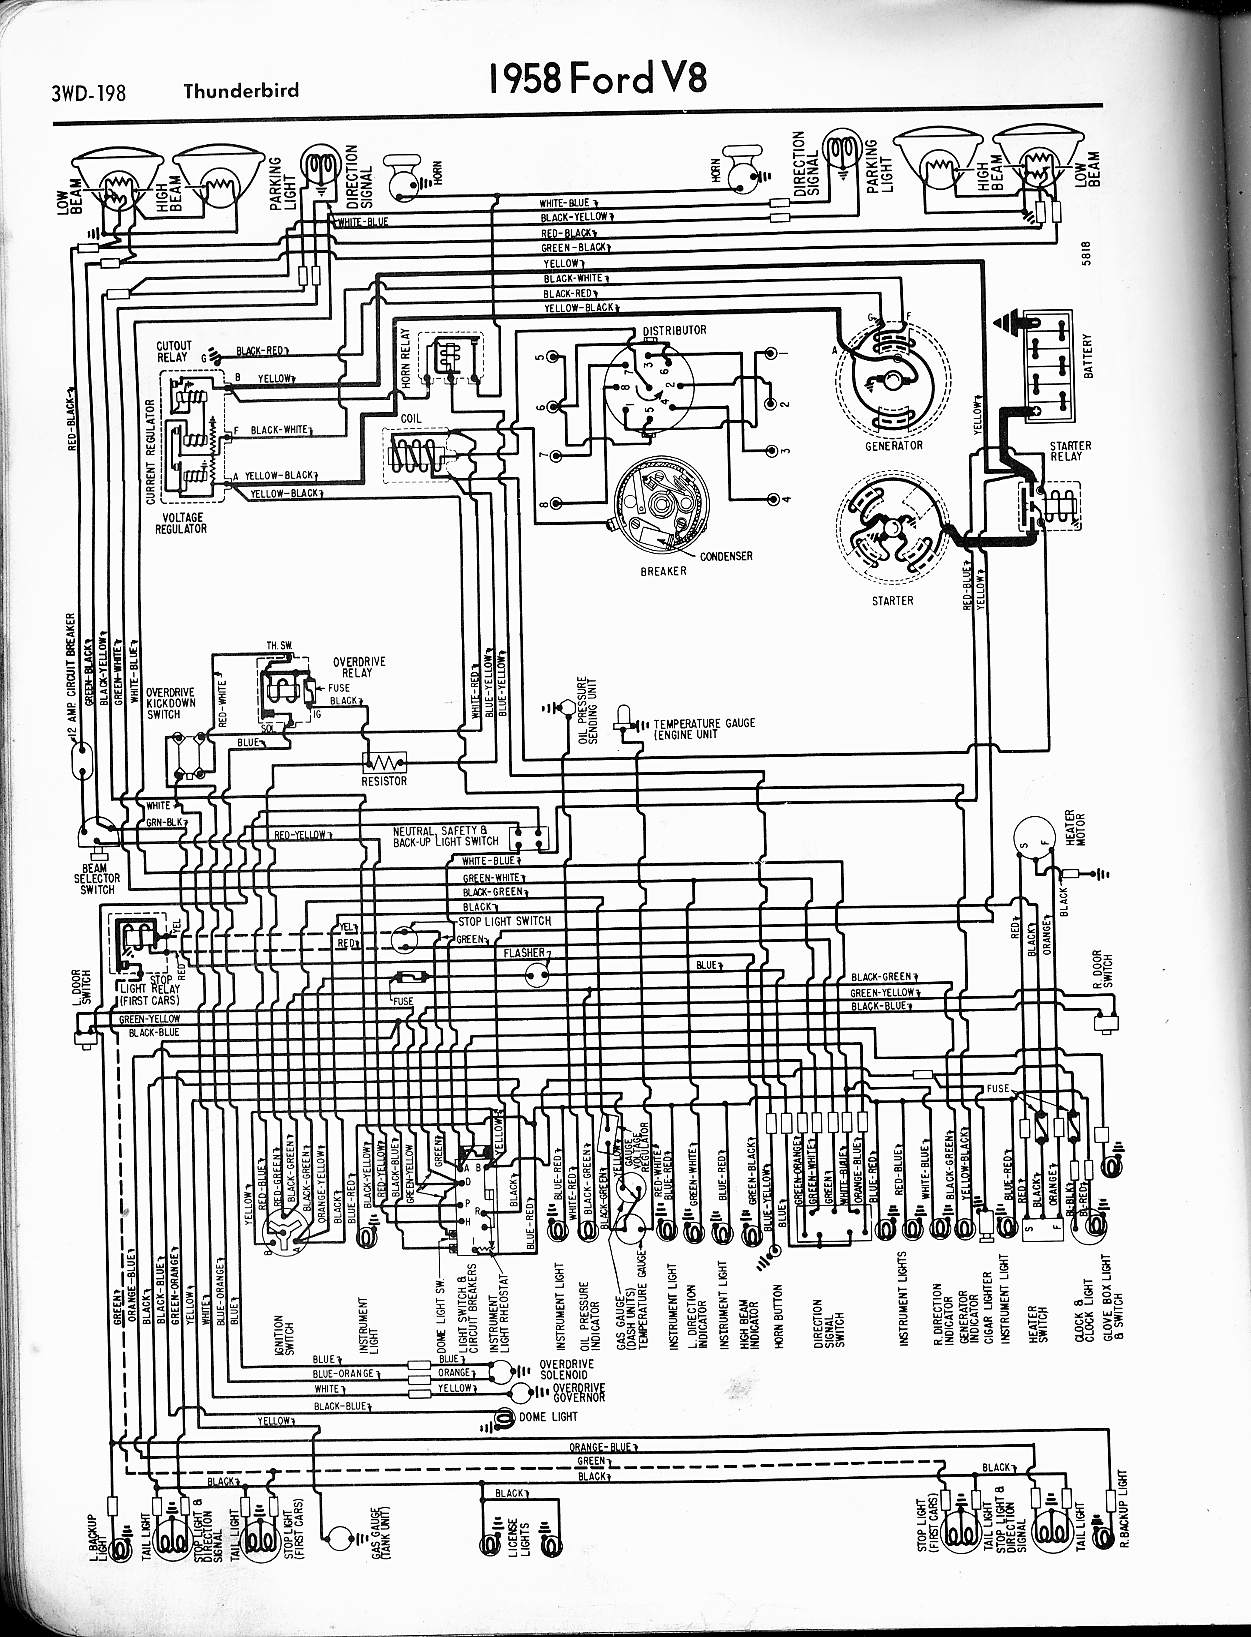 ford f 350 power seat wiring wiring diagram2005 ford f 150 power seat wiring diagram wiring diagram1956 thunderbird power seat wiring diagram on